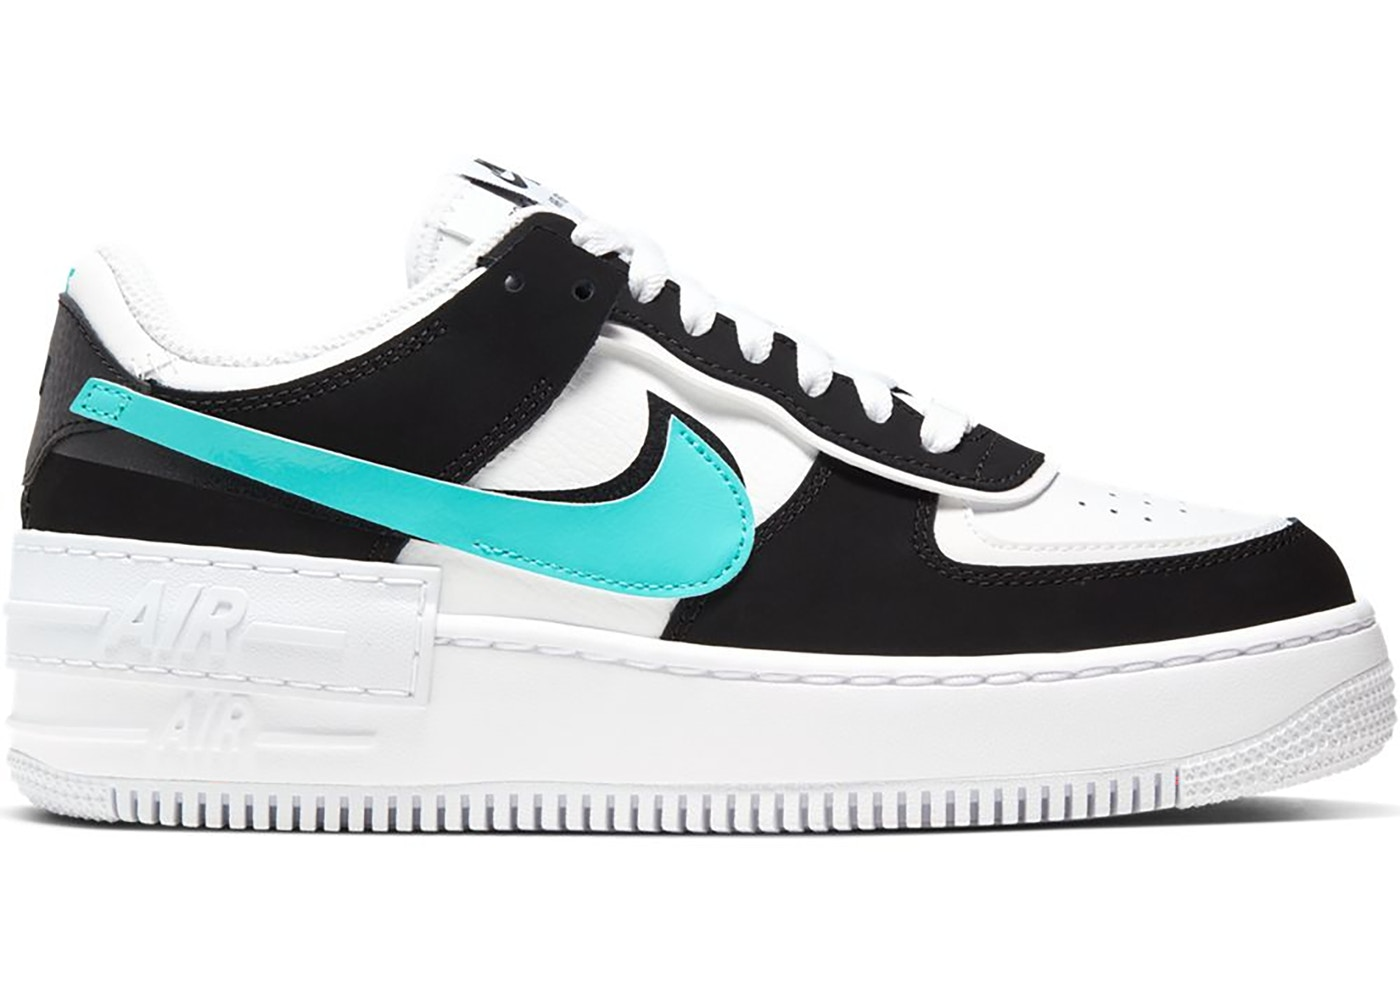 Nike Air Force 1 Shadow White Black Aurora W Cz7929 100 The legendary air force 1 low casual shoes are still just as coveted today as they were when they first hit the scene in the 1980s. nike air force 1 shadow white black aurora w